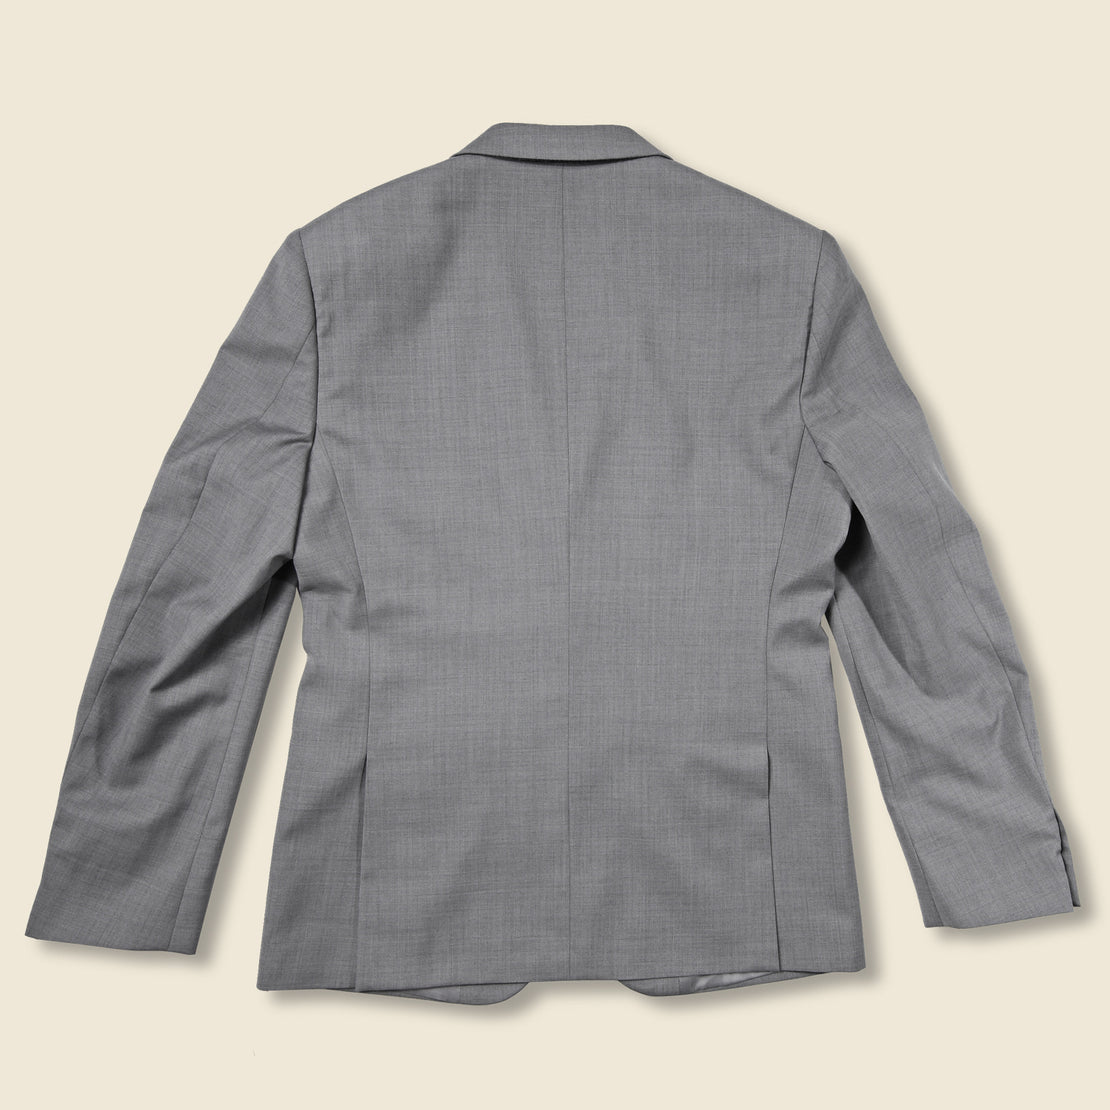 Suit Jacket - Grey - General Assembly - STAG Provisions - Suiting - Sport Coat